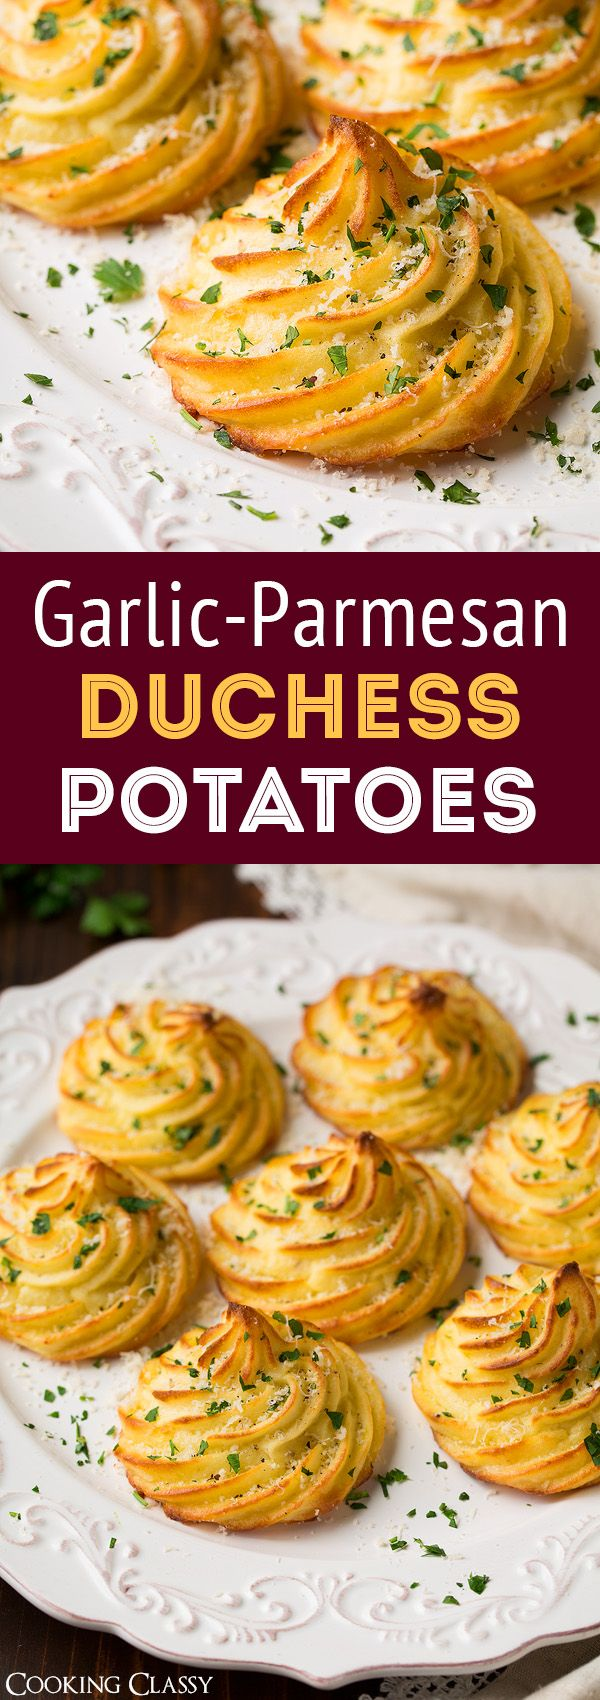 Garlic Parmesan Duchess Potatoes